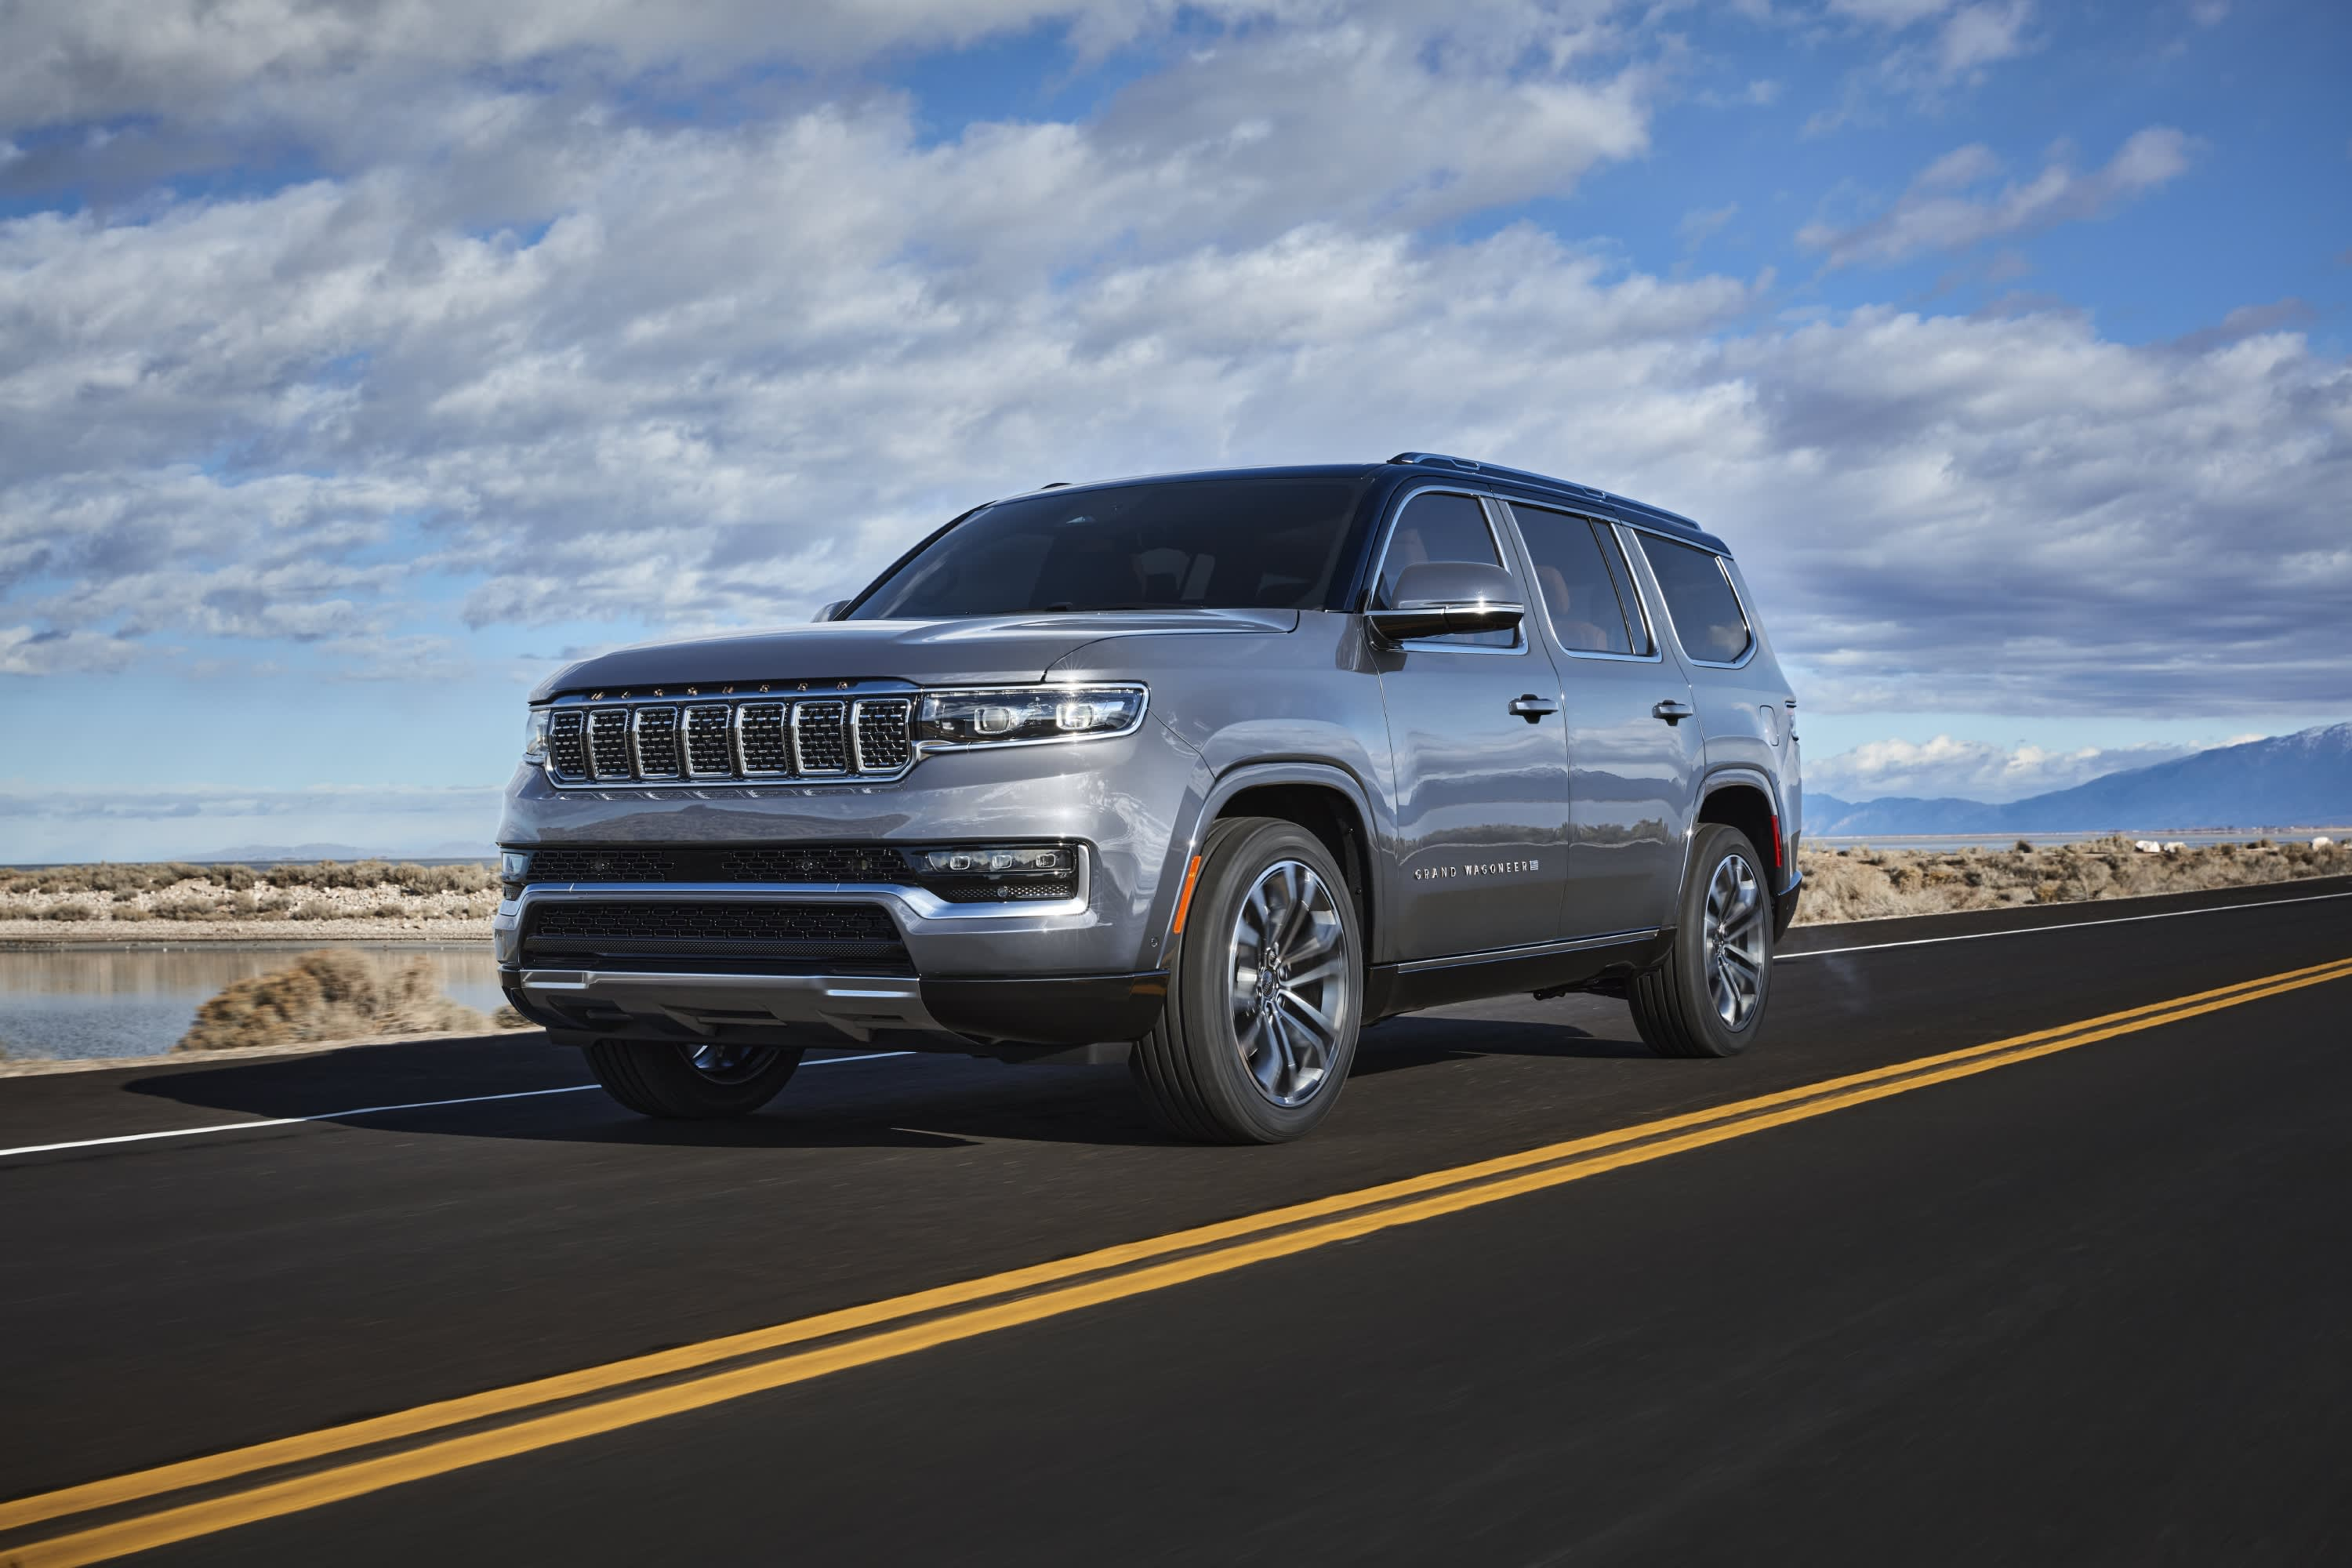 The Jeep Grand Wagoneer Concept from last year has finally made it into production along with its trimmed-down variant, the not-so-grand Wagoneer.